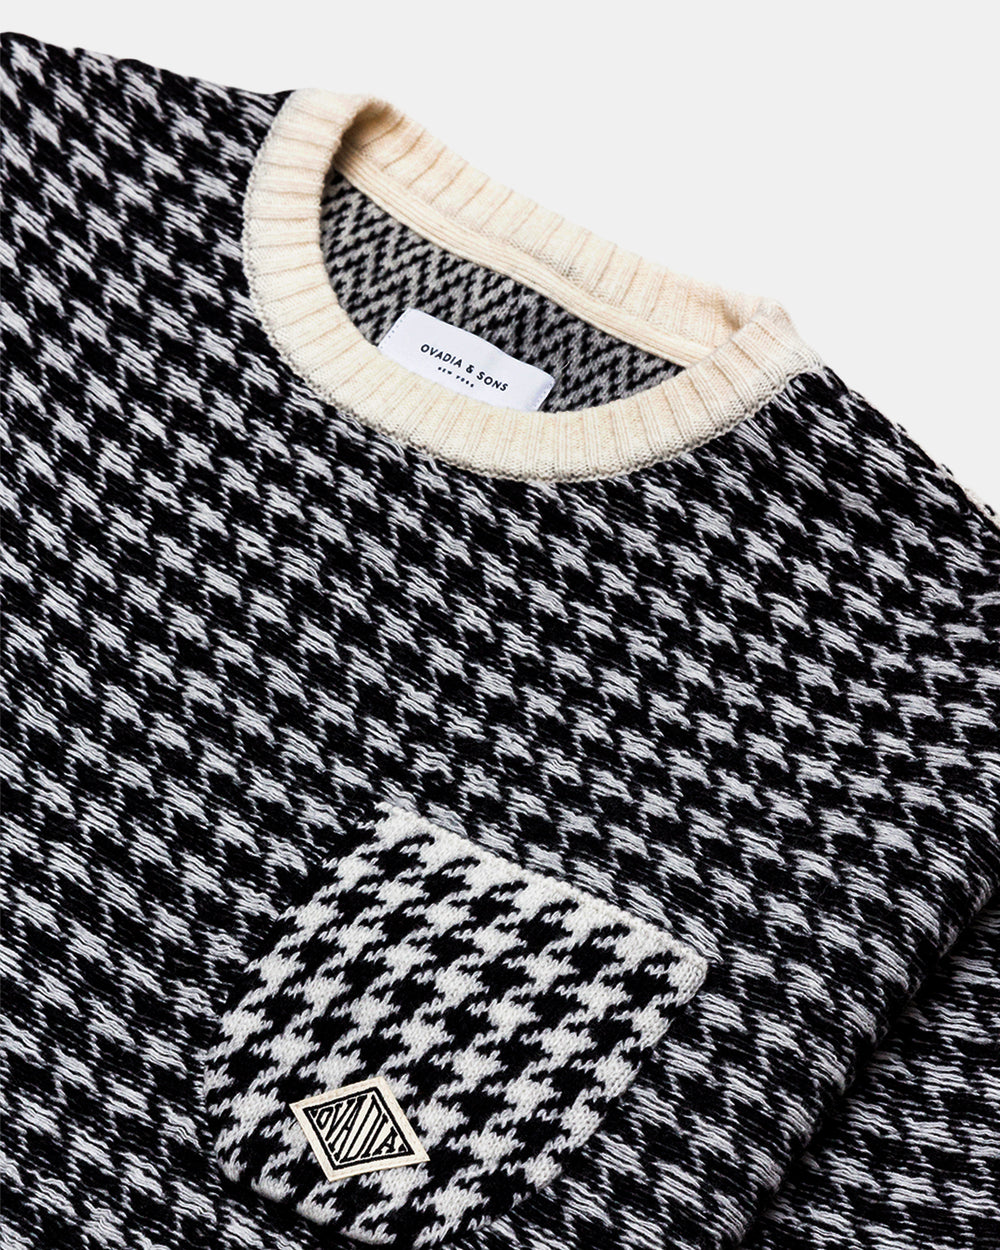 Ovadia & Sons - Houndstooth Oversized Sweater (Black | White)